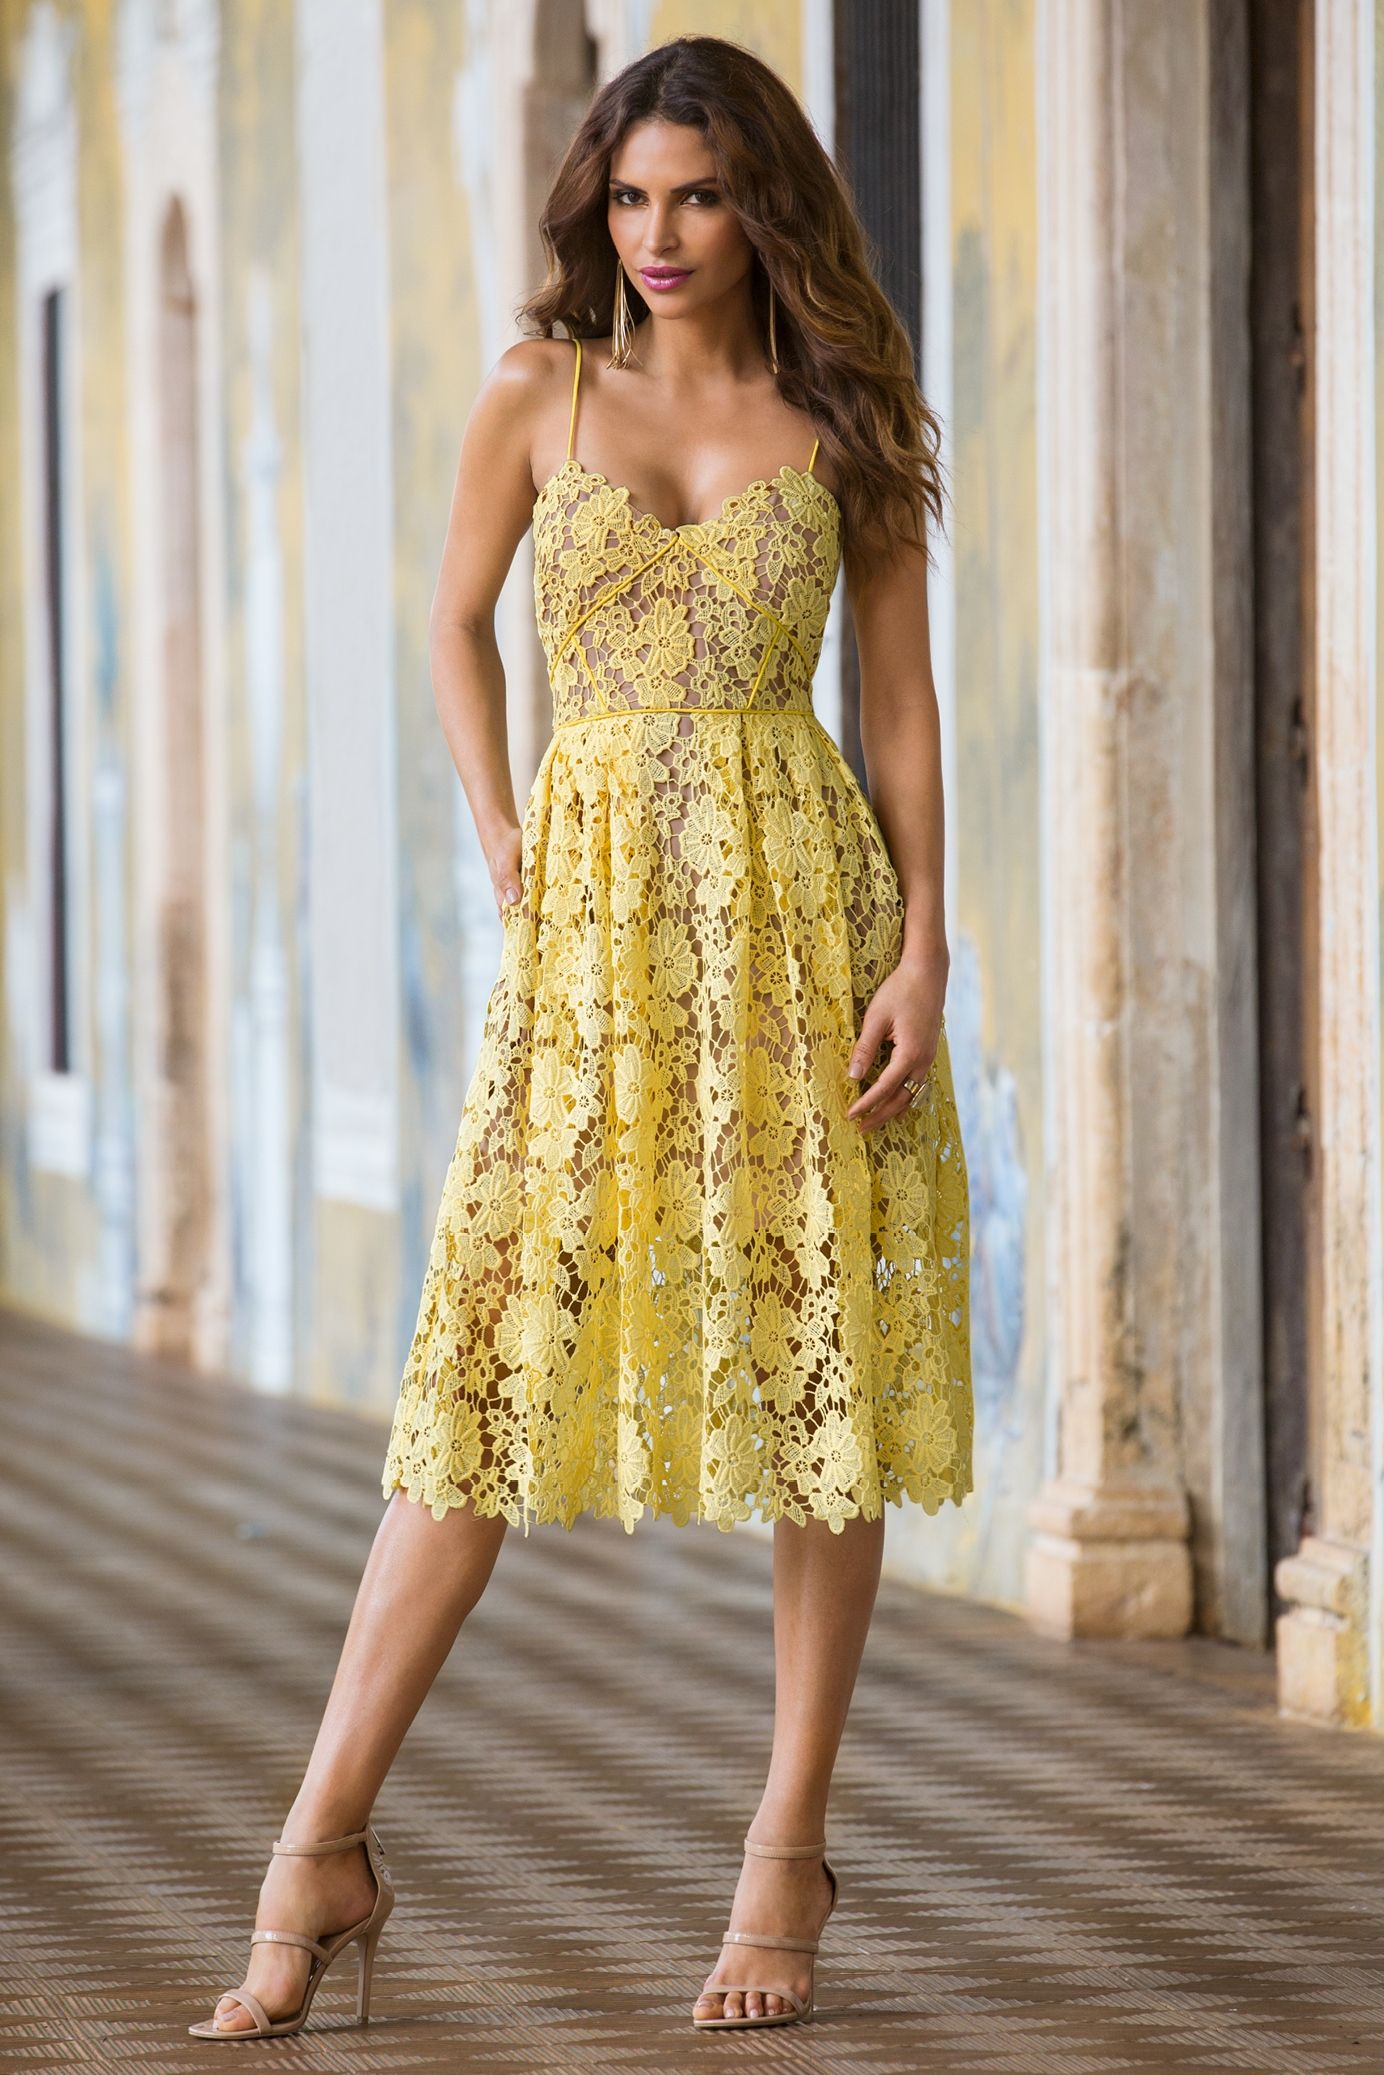 96476ad70d0d Sunny Lace Dress | Looks We Love | Lace dress styles, Yellow lace ...